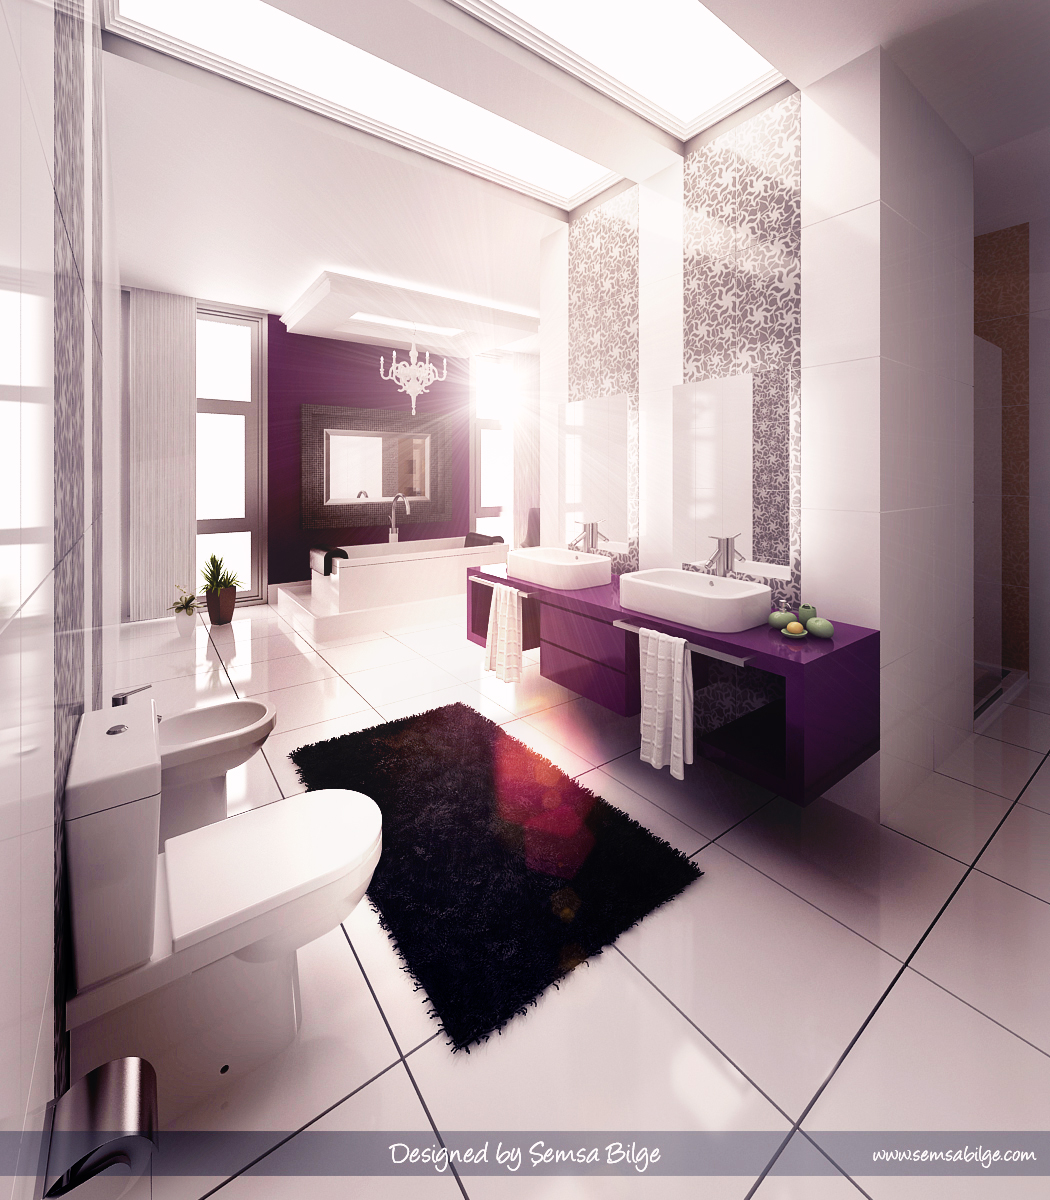 Bathroom Design Ideas: Inspiring Bathroom Designs For The Soul